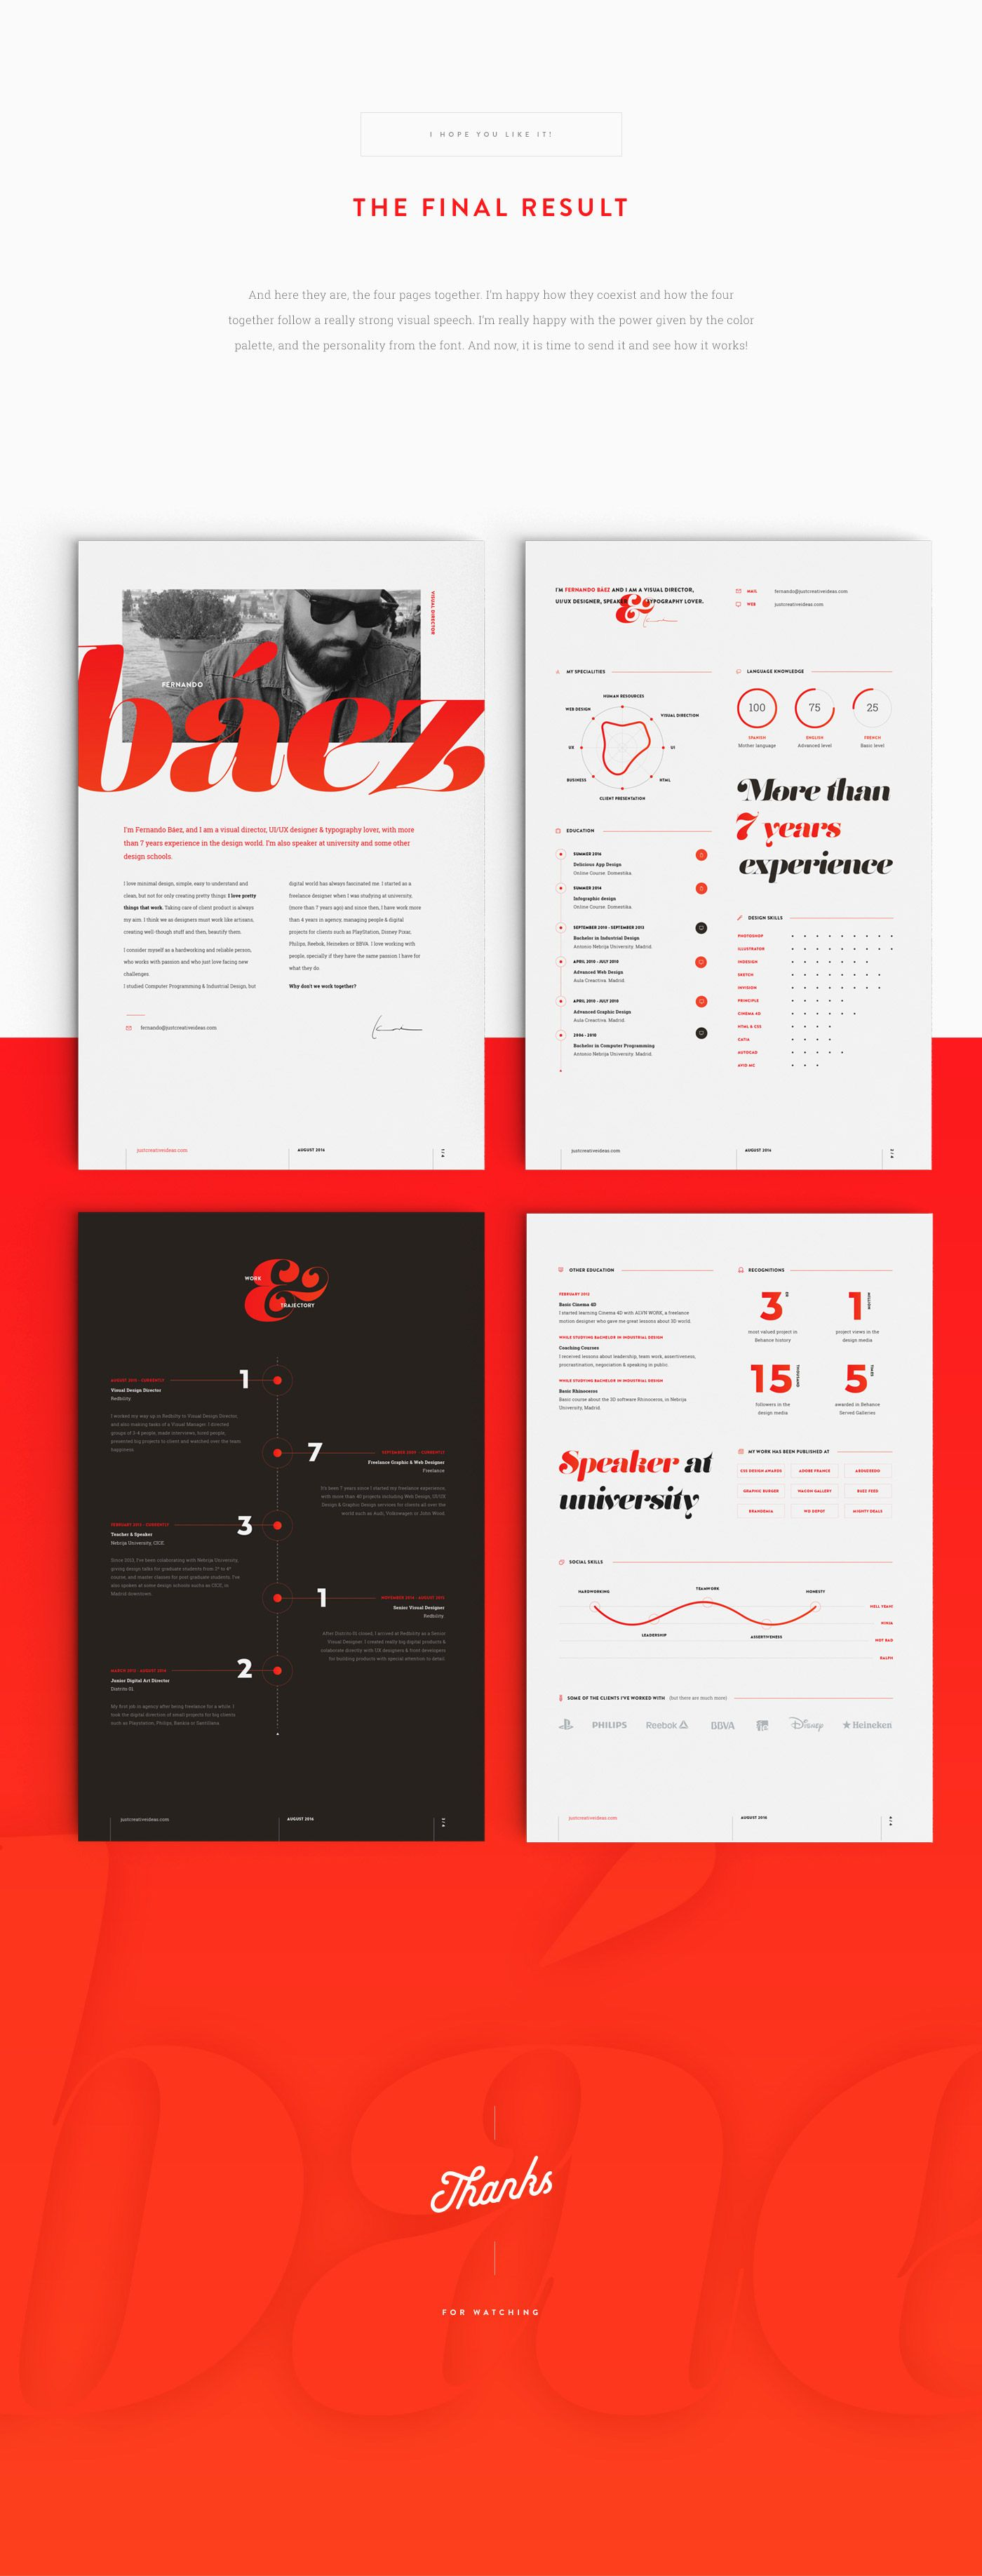 After a couple of years with the old one, here is the new version of my Resume/CV. With a strong use of type and color, it has been designed to be extremely easy and quick to read, and stand out from the rest.